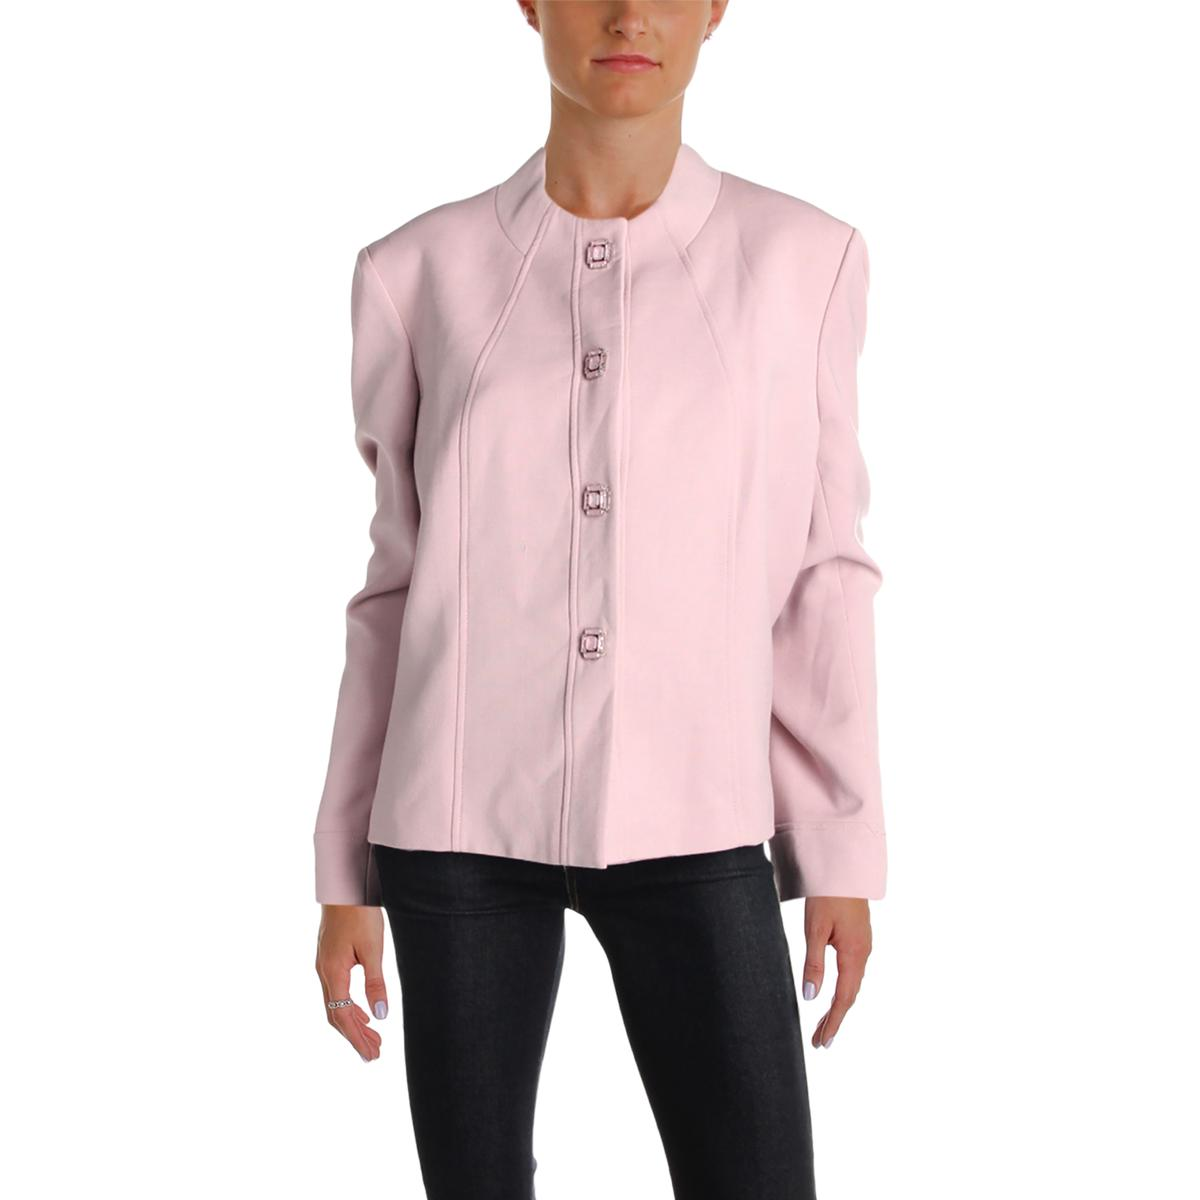 ccb7bf4641de Details about Tahari ASL Womens Pink Textured Four-Button Blazer Jacket  Plus 18 BHFO 2265